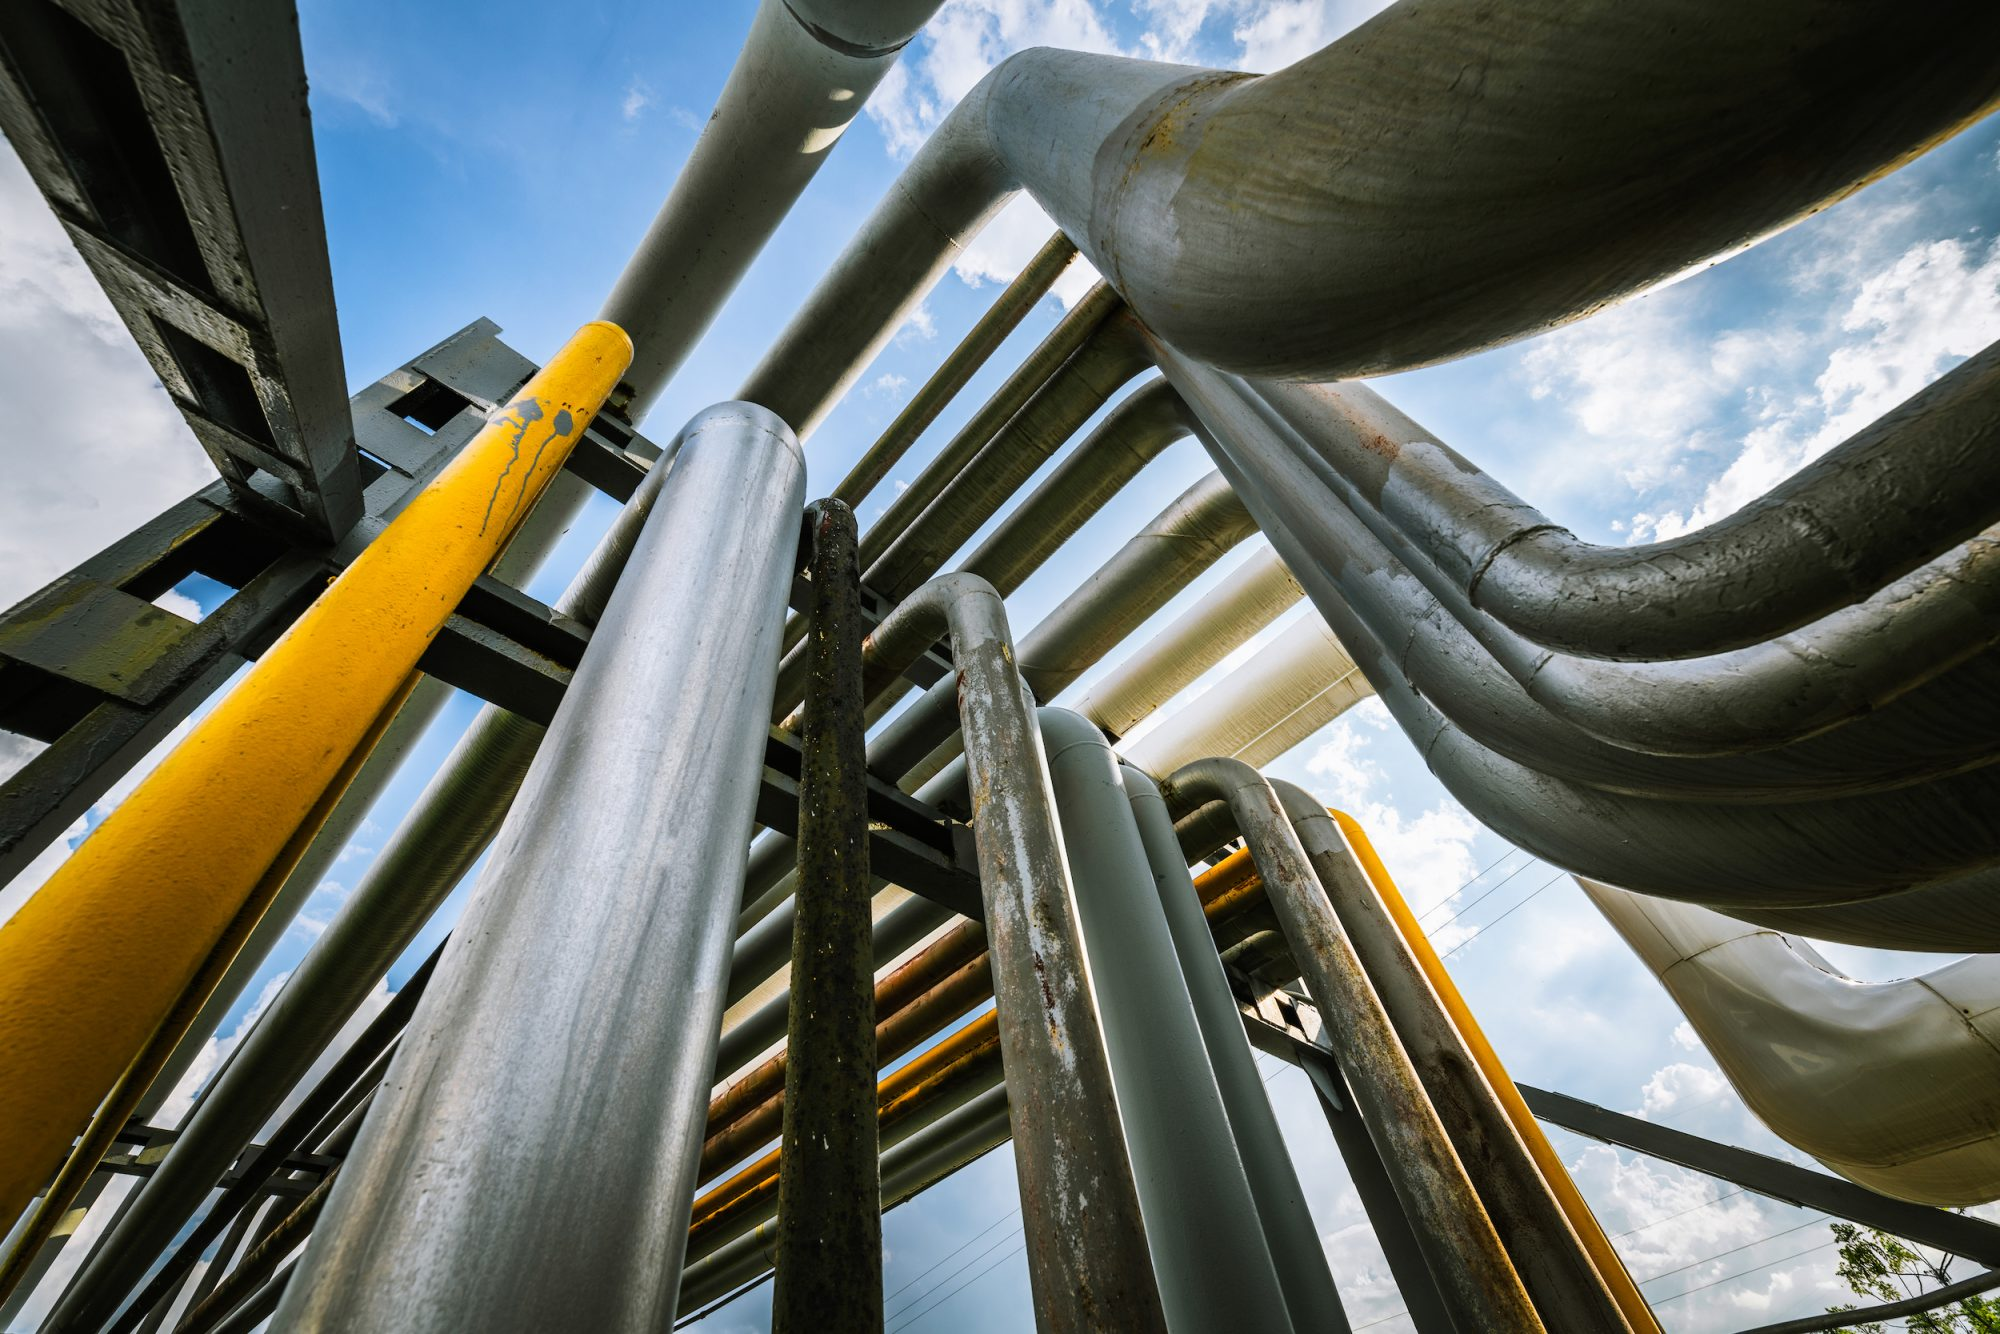 Russian coating increases speed of transporting oil through pipelines